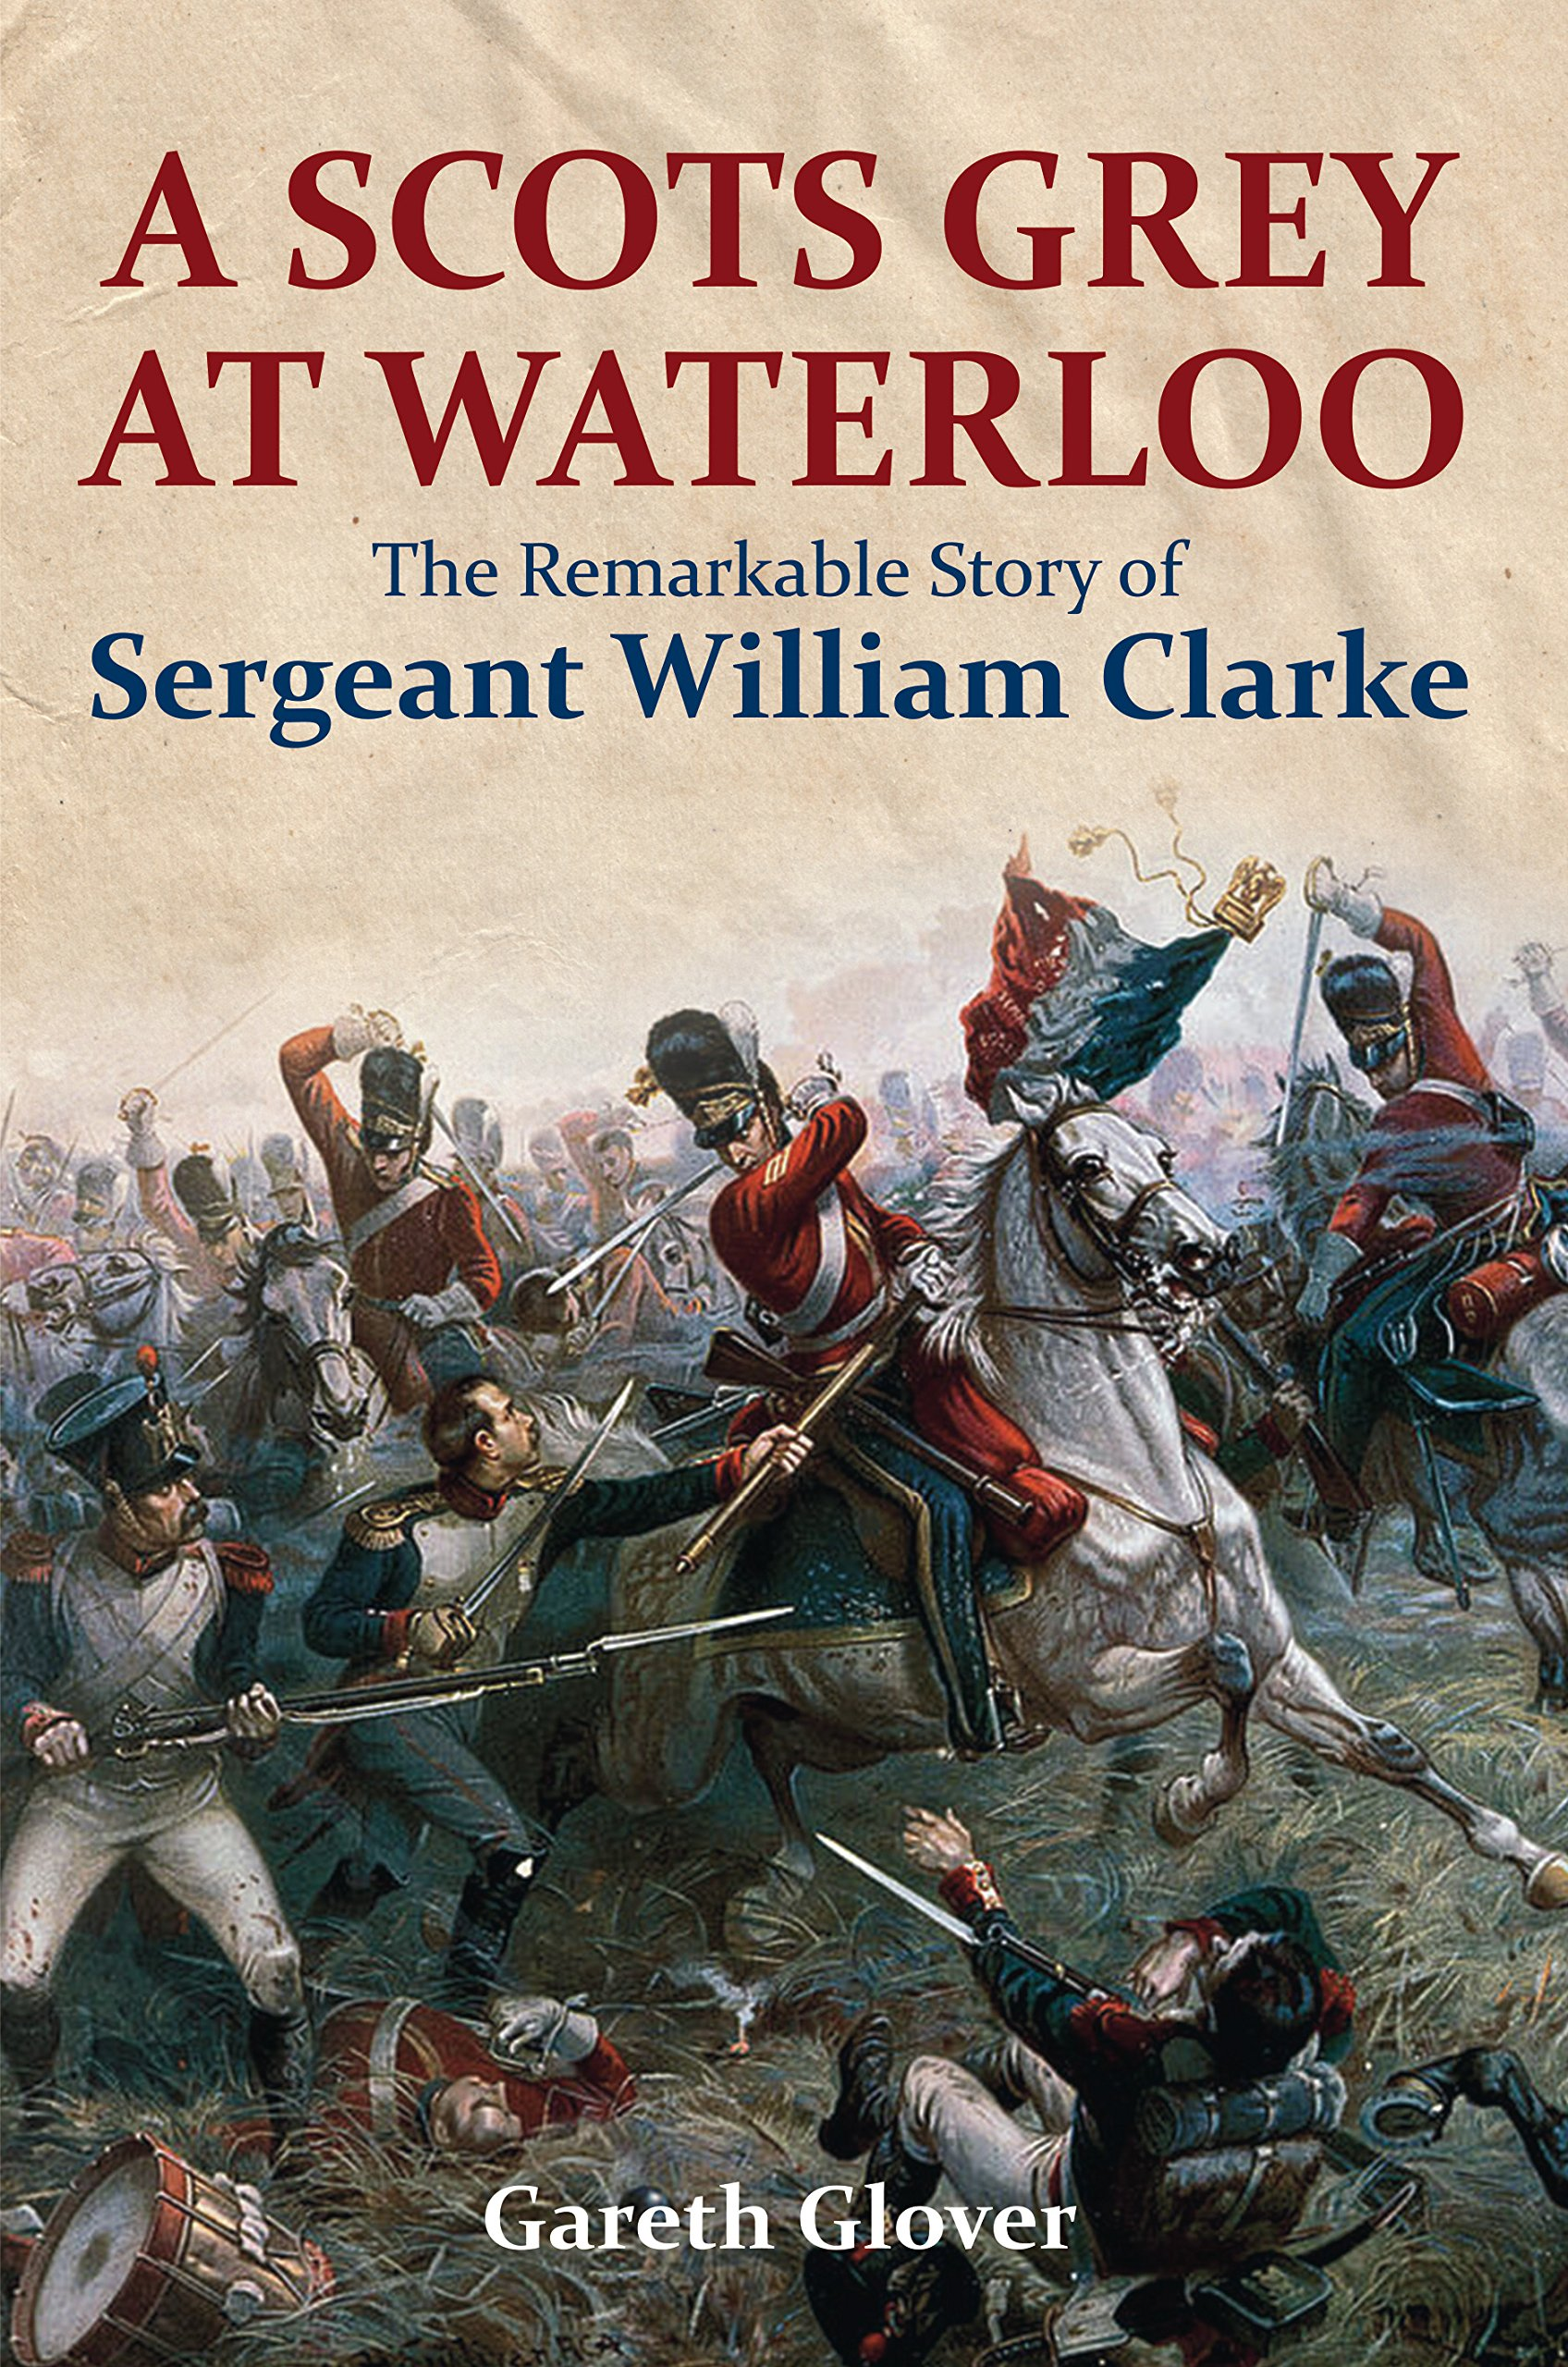 A Scots Grey at Waterloo The Remarkable Story of Sergeant William